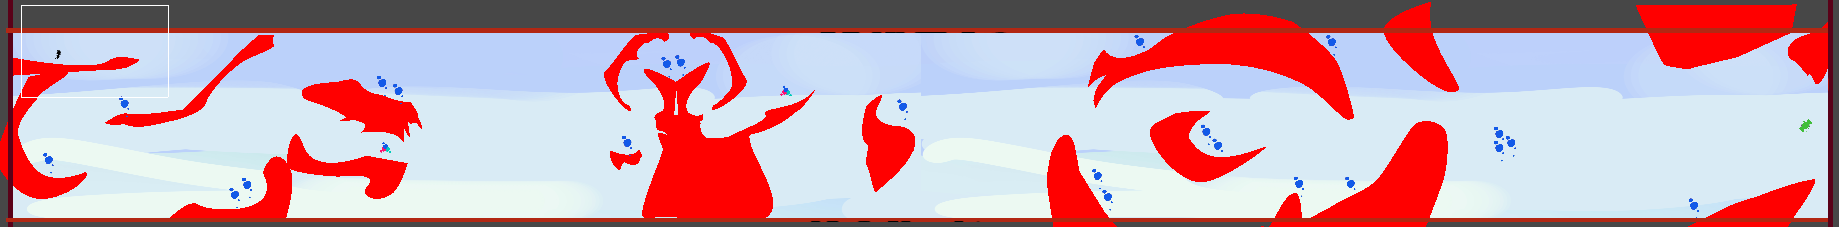 Player implemented into the first iteration to check the scale and playtest.